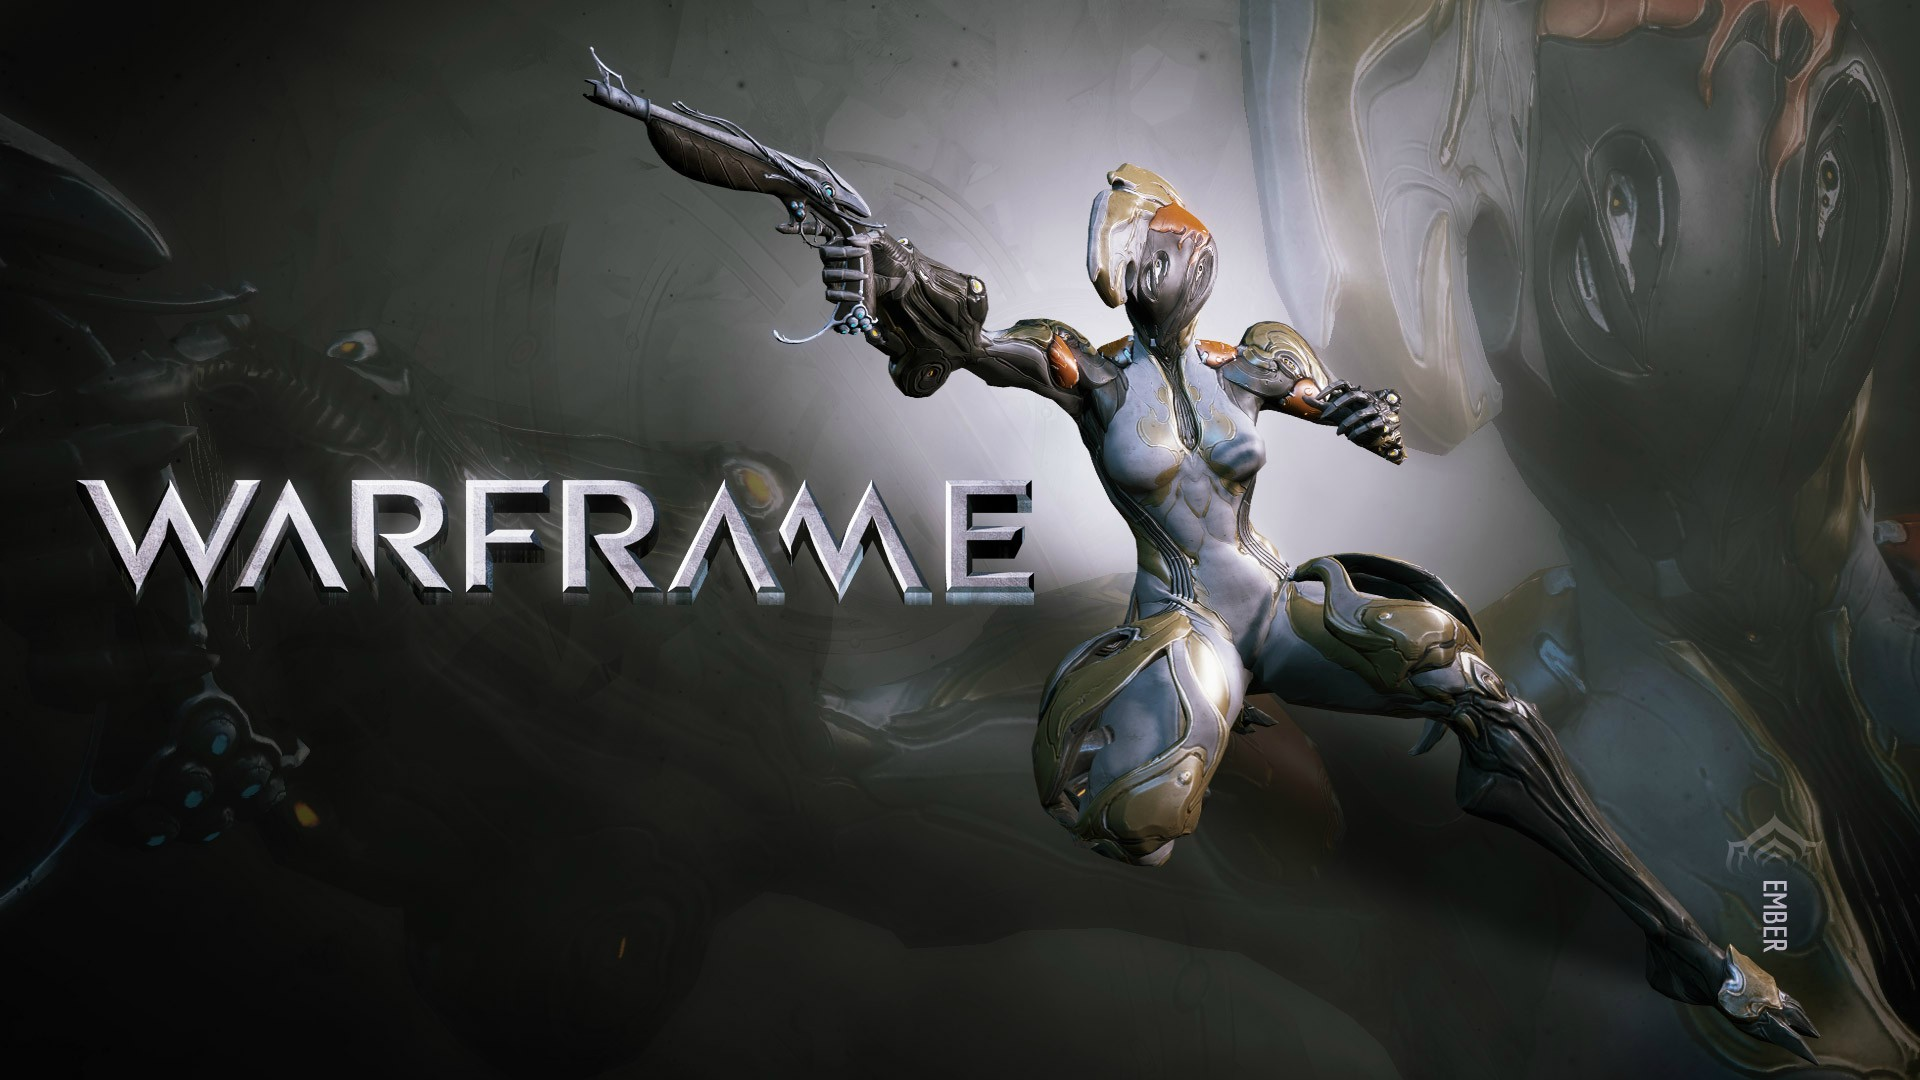 Ember-Warframe-Steam-Trading-Card-×-wallpaper-wp5206174